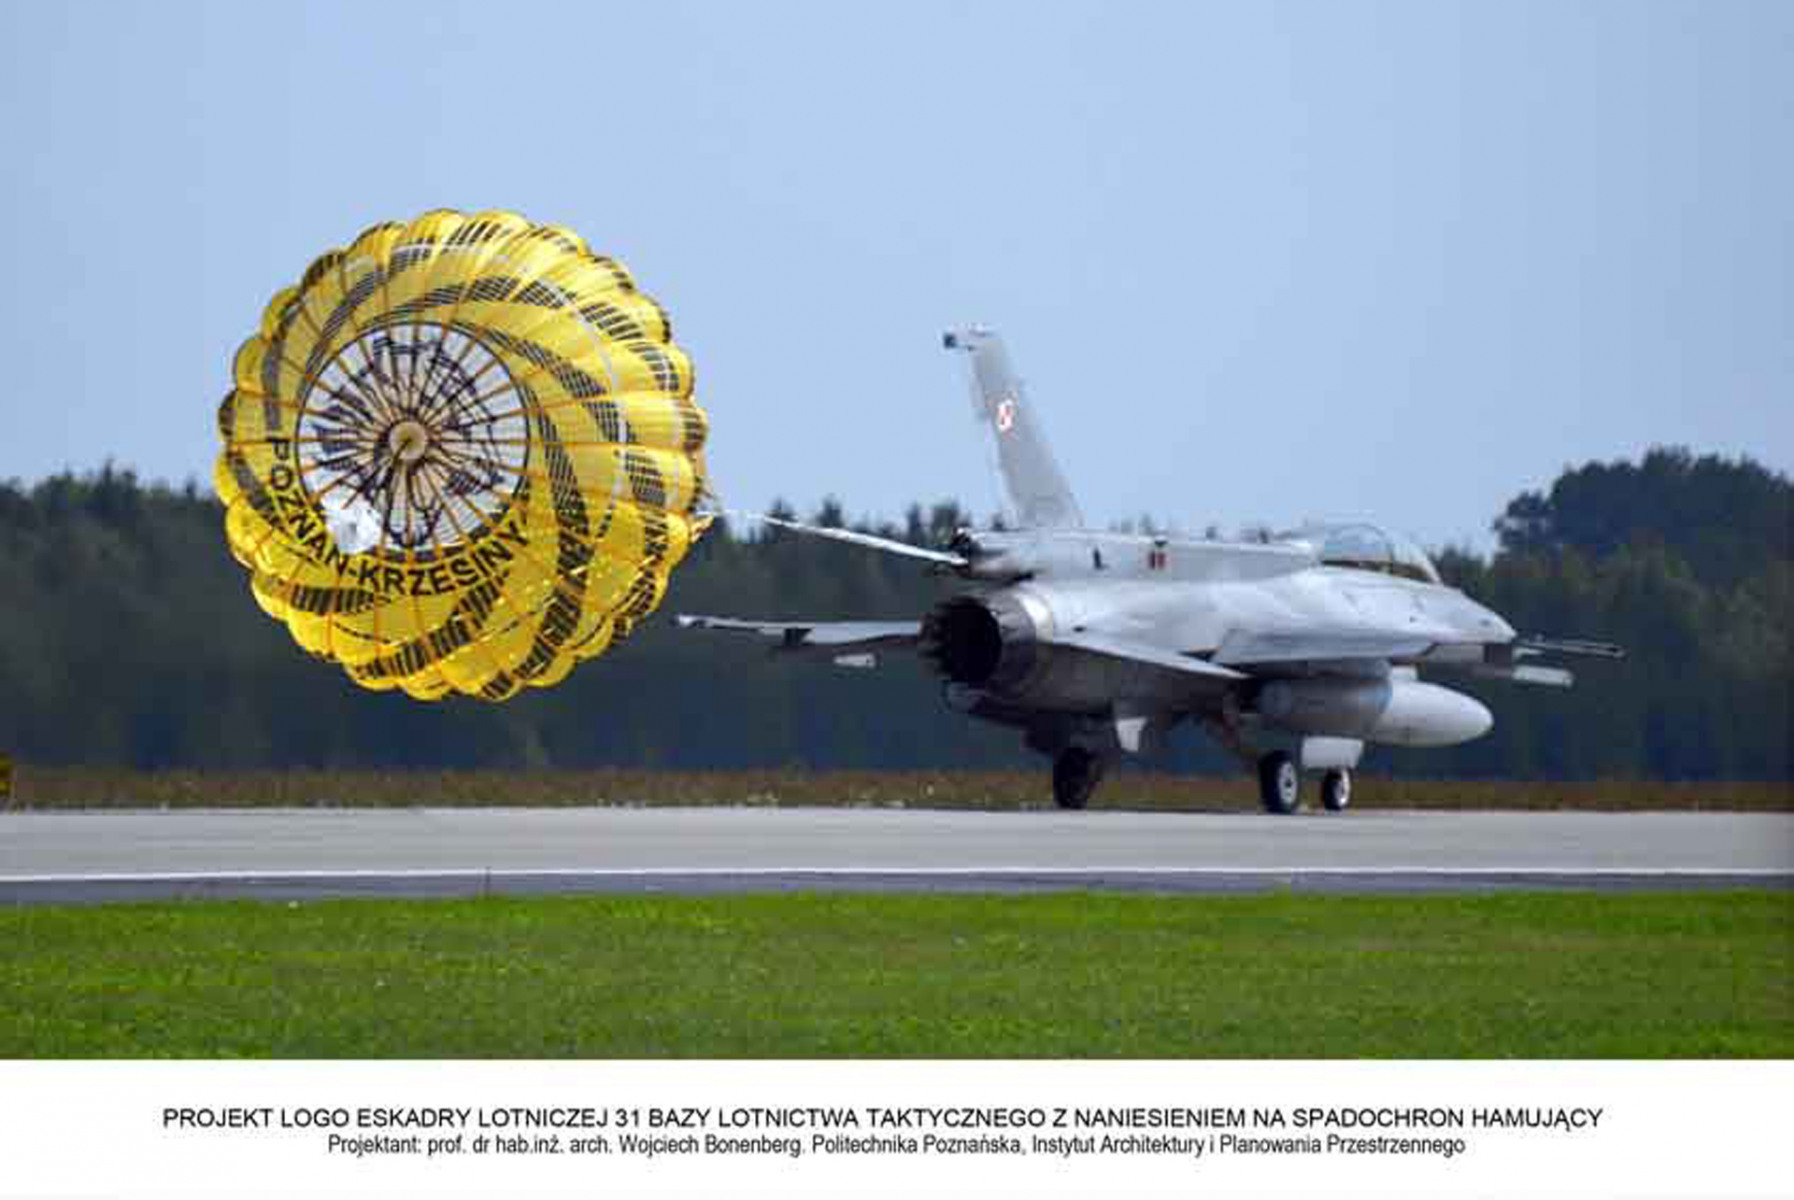 The Logo of the Squadron on the F-16 Jet Drogue Parachute